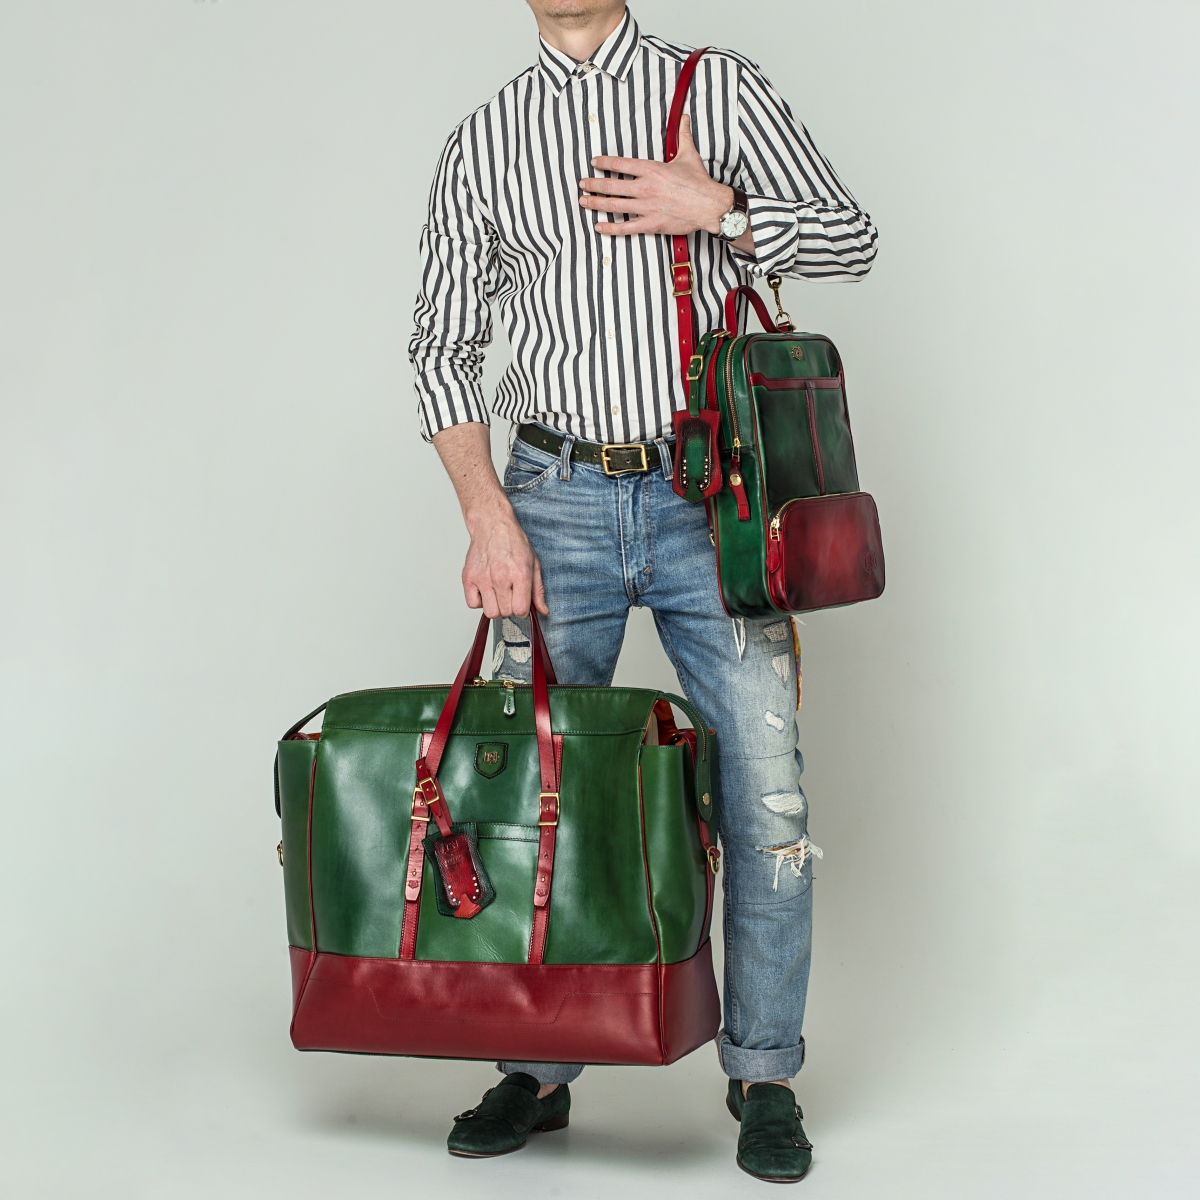 Travel bag WEEKENDER  red currant & grassy green